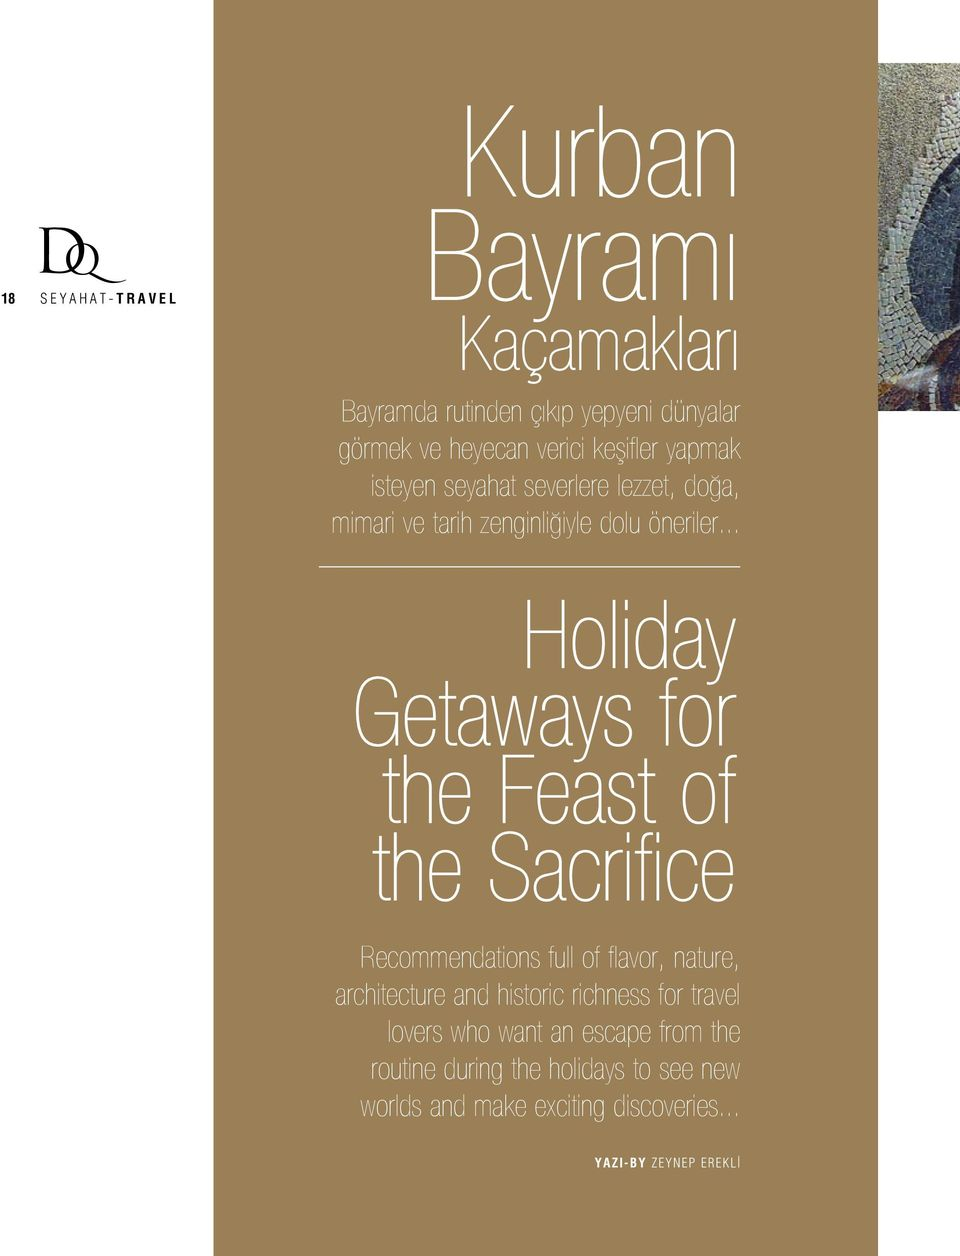 .. Holiday Getaways for the Feast of the Sacrifice Recommendations full of flavor, nature, architecture and historic richness